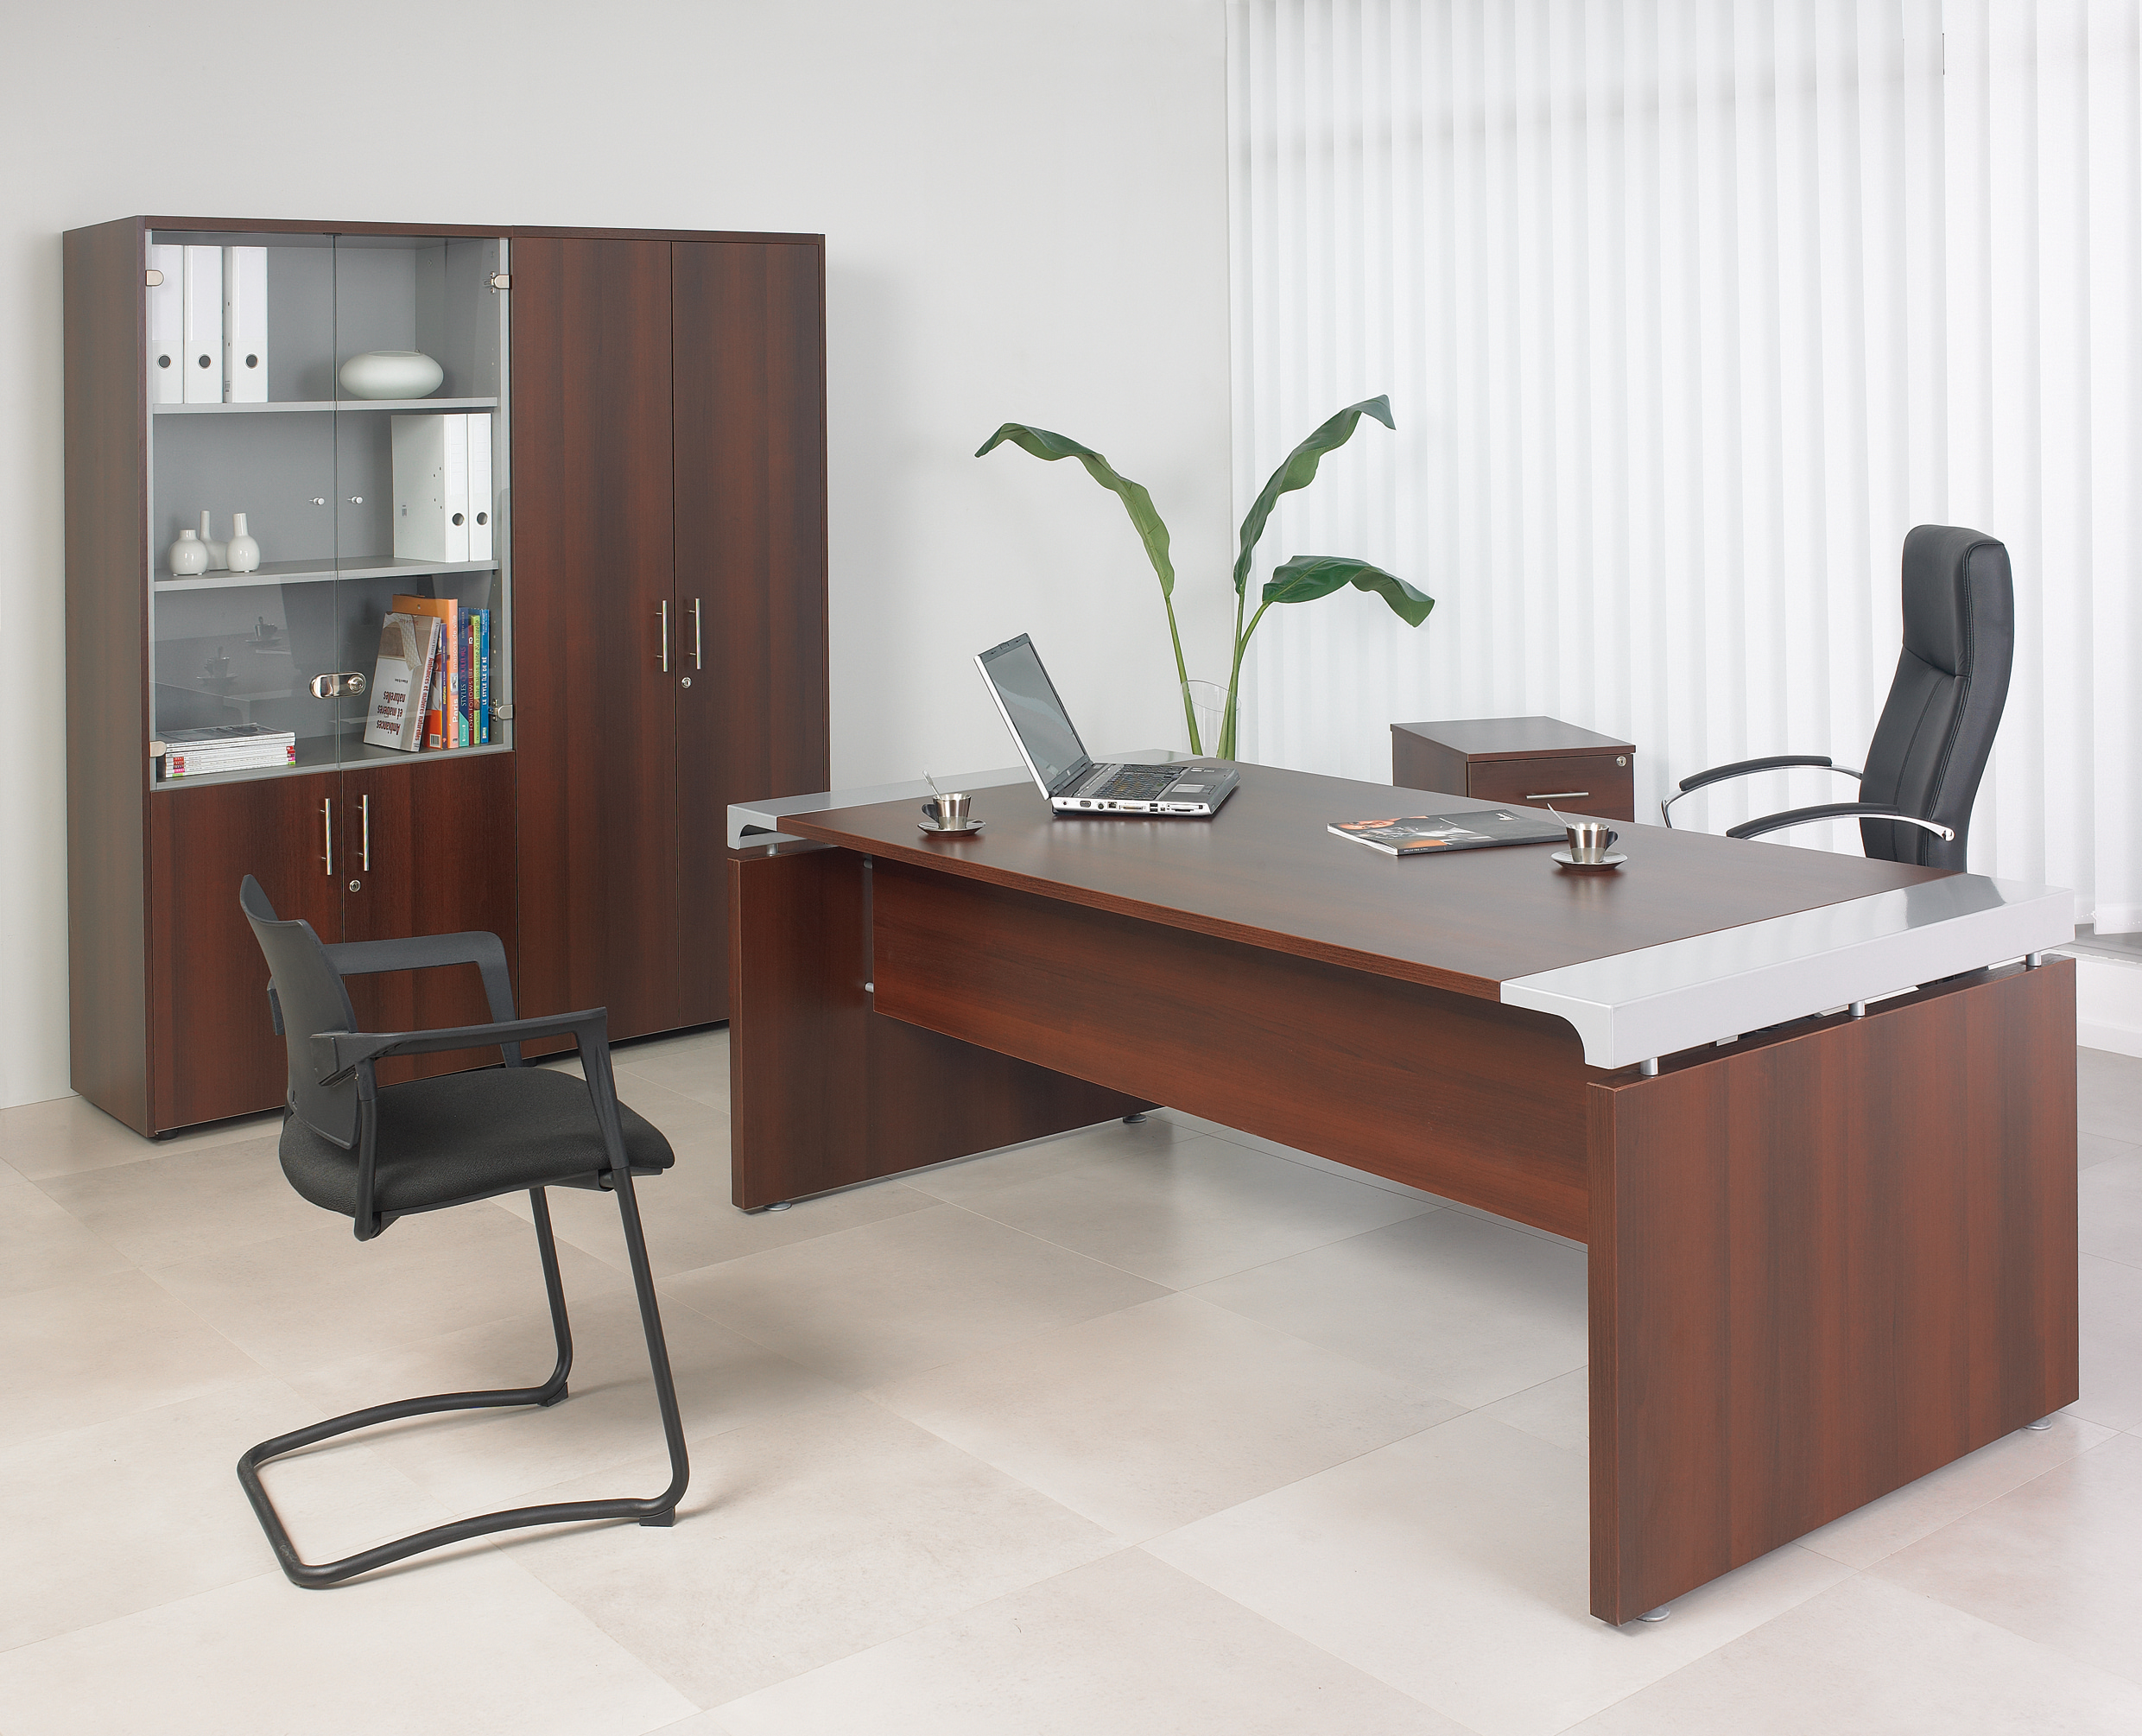 Mobilier de bureau djed agencement for Meuble e bureau